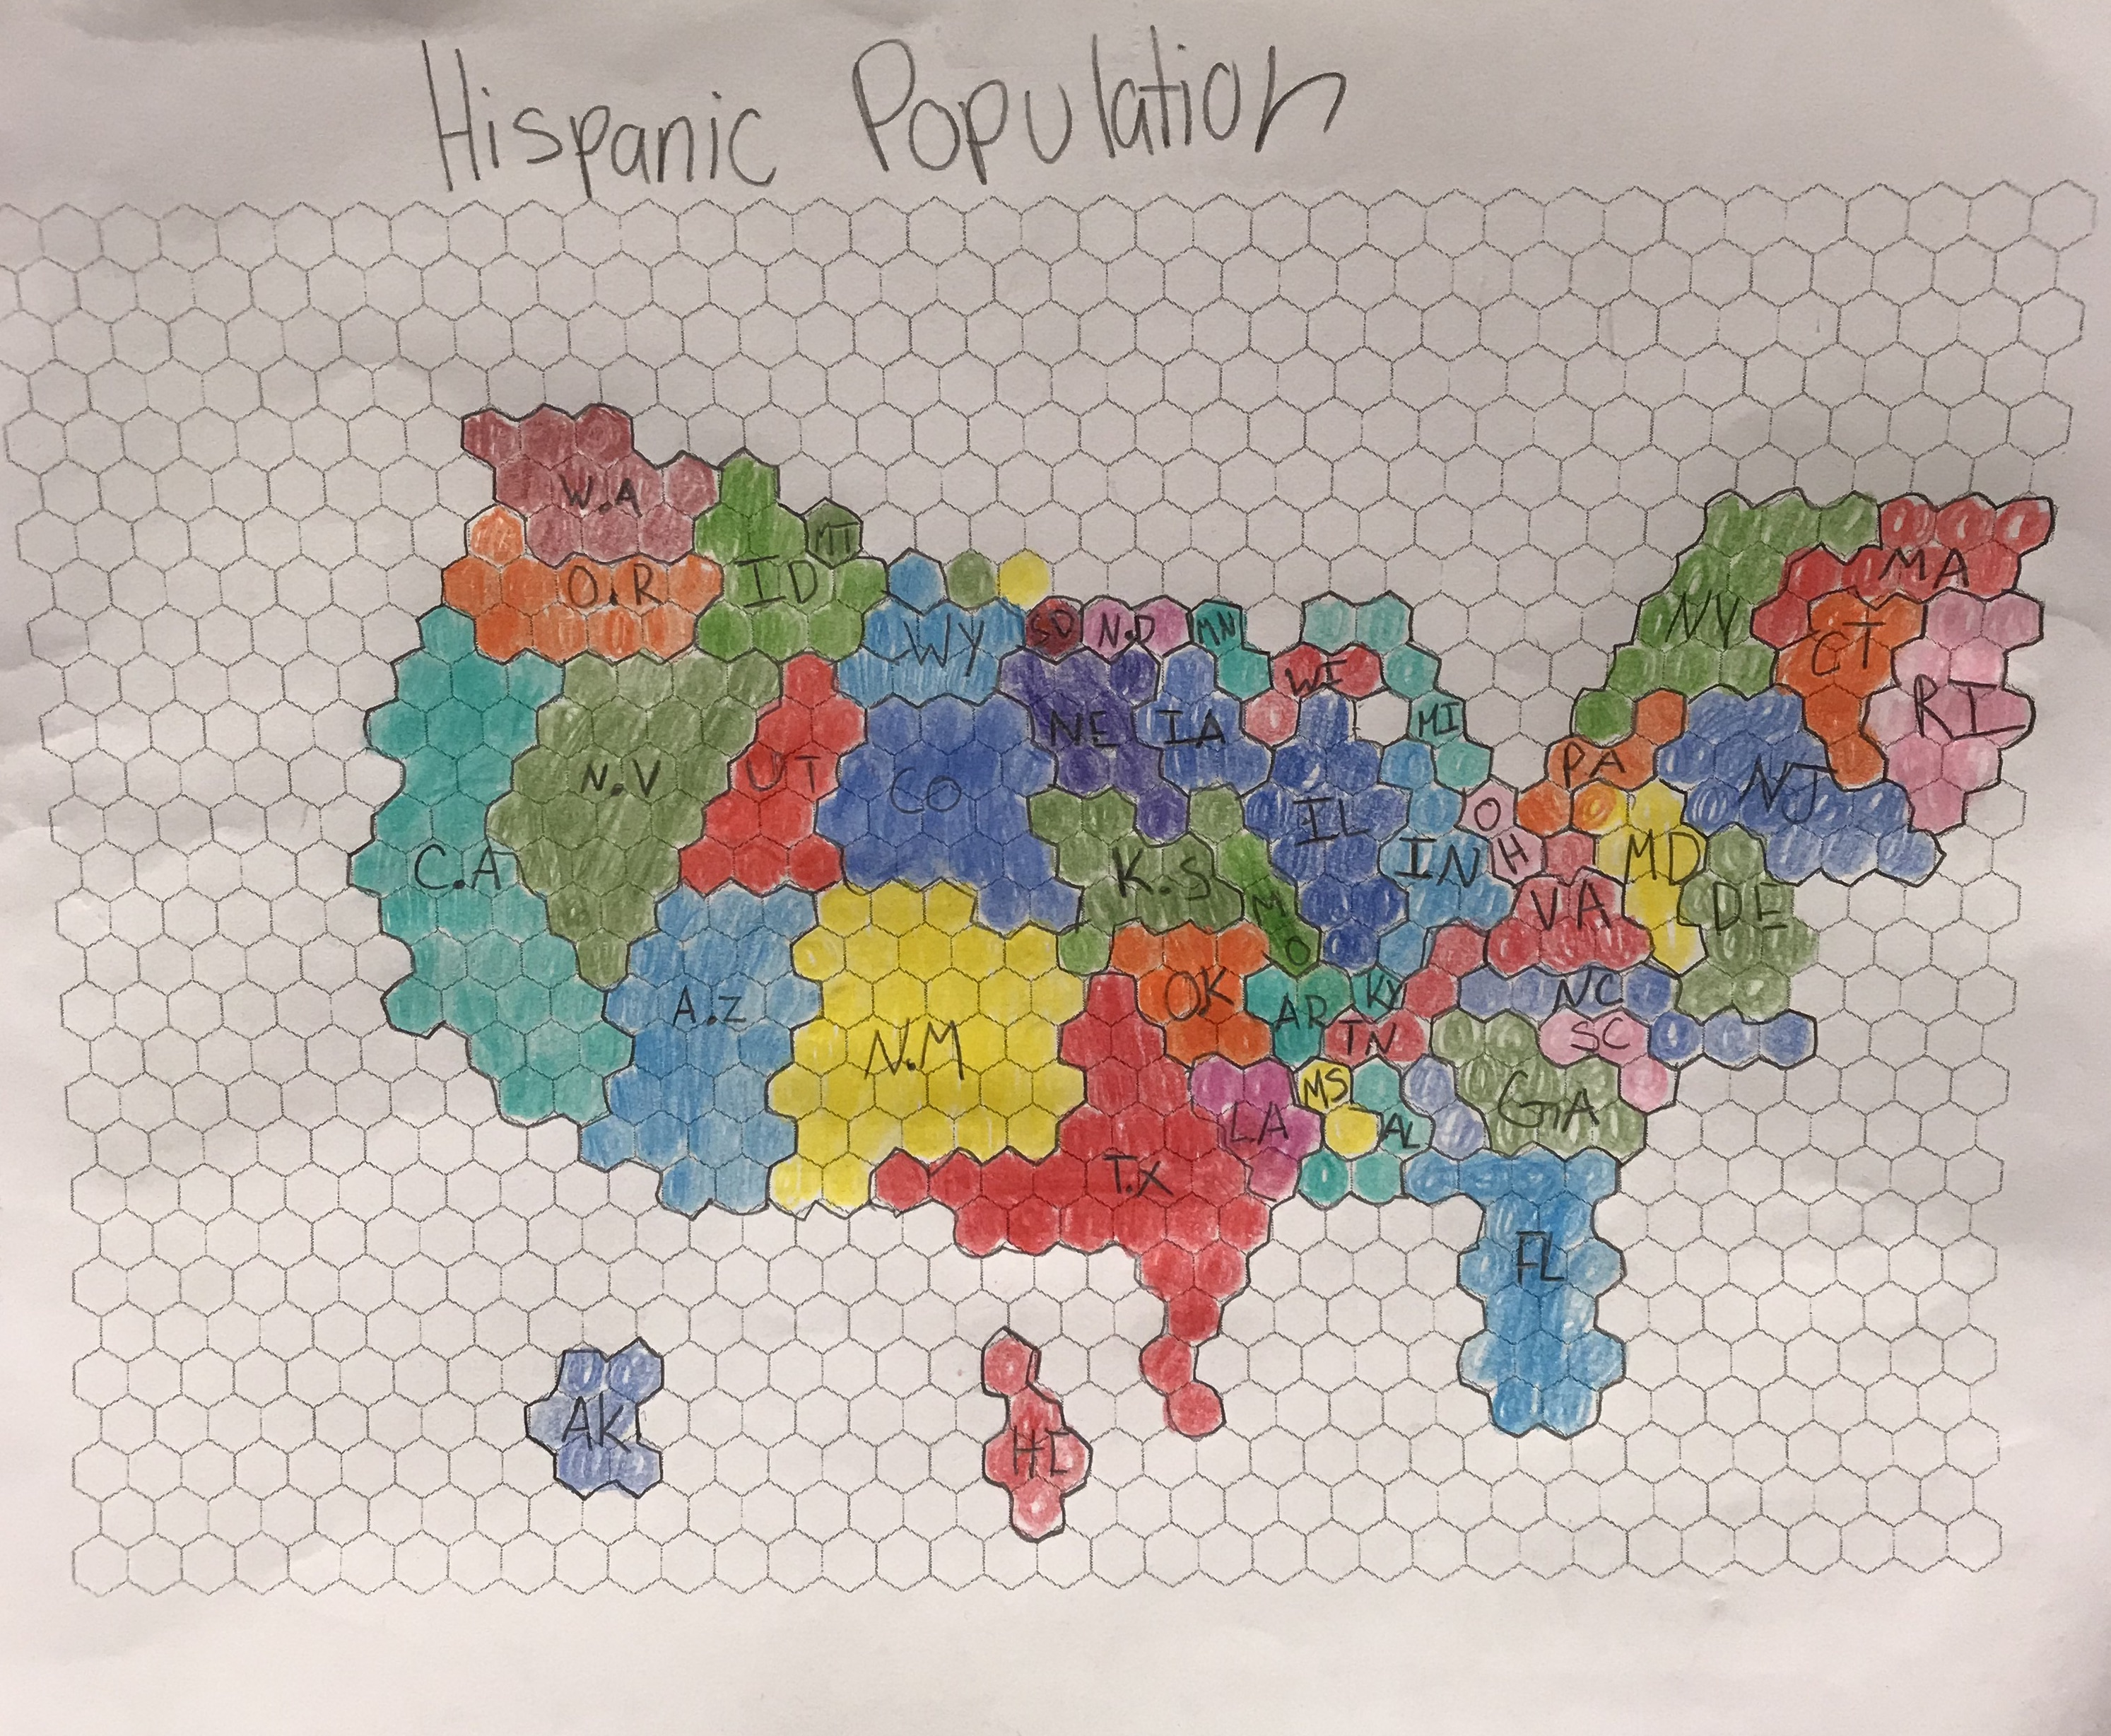 A colorful map of the United States